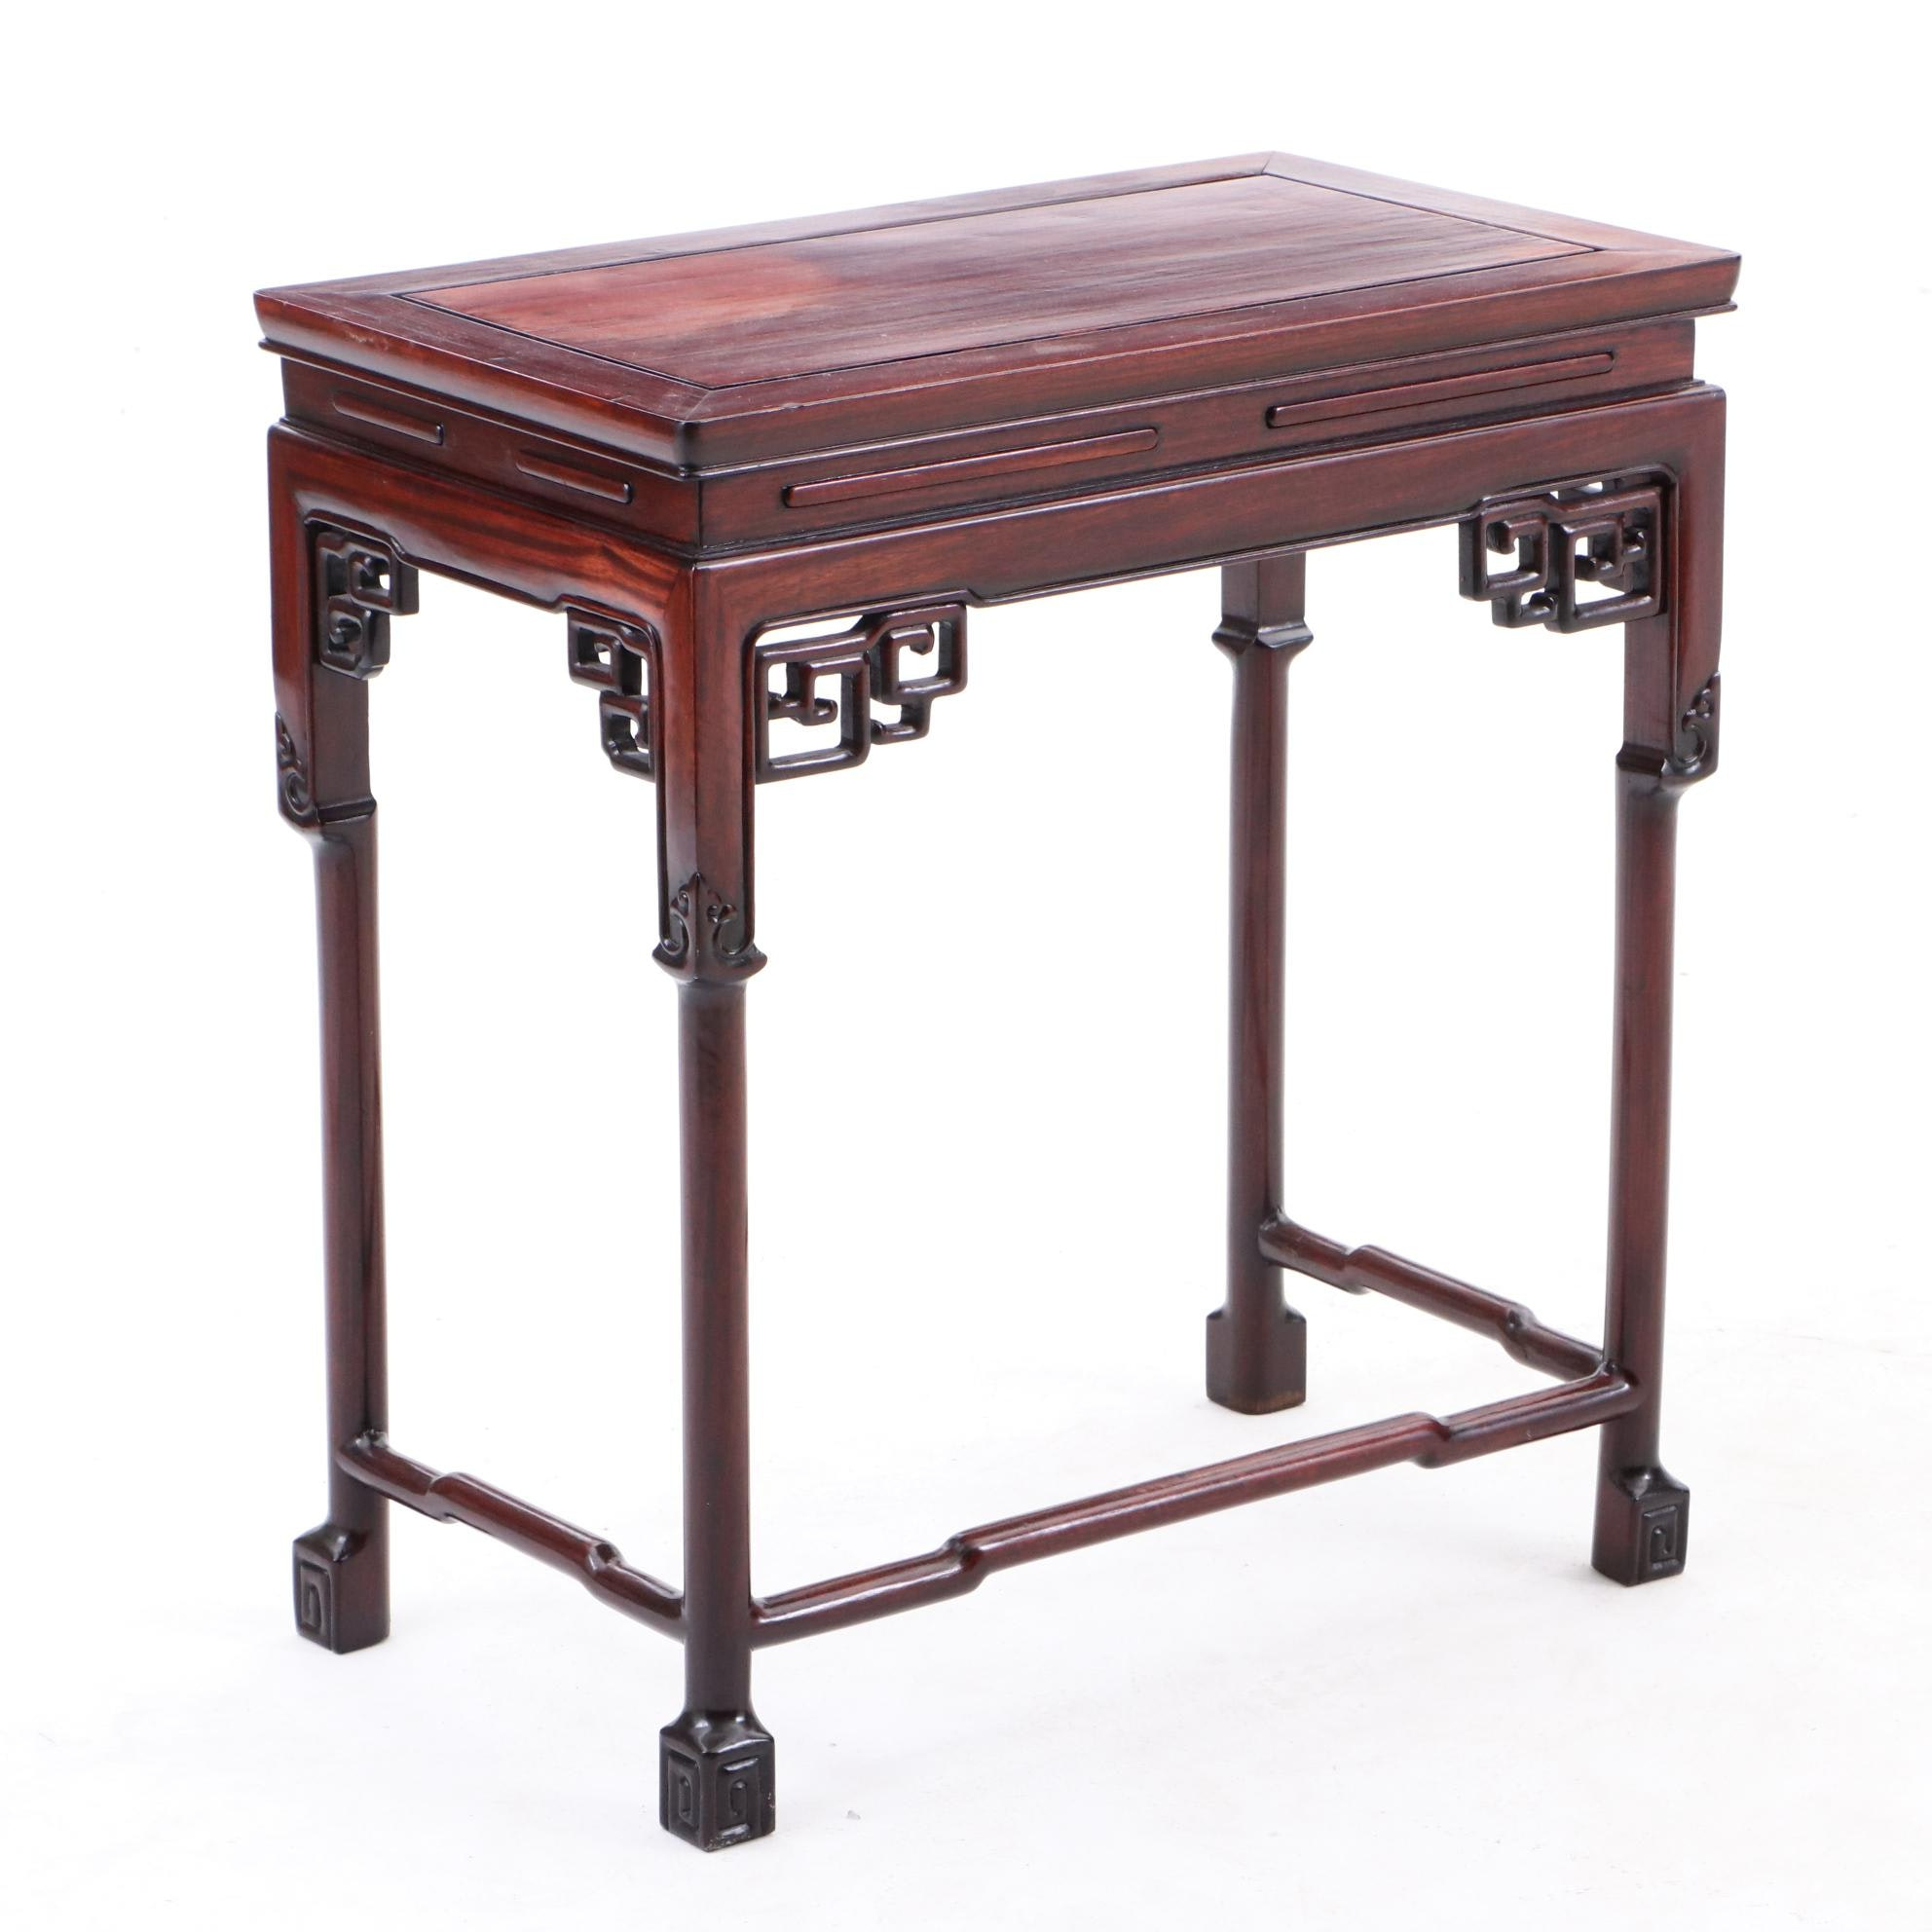 Chinese Accent Table with Cherry Finish